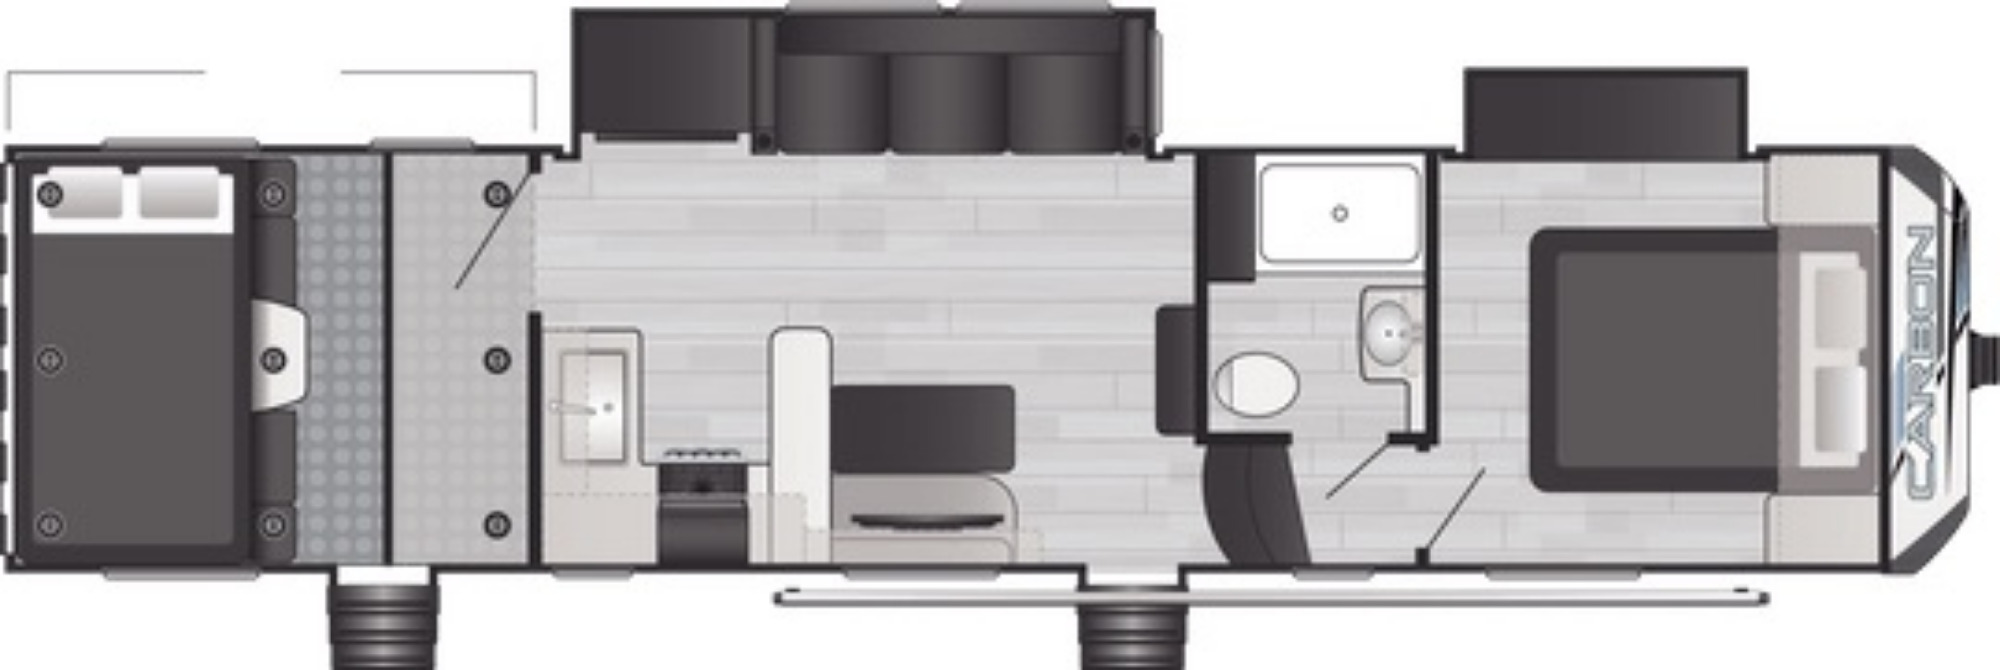 View Floor Plan for 2021 KEYSTONE CARBON 338